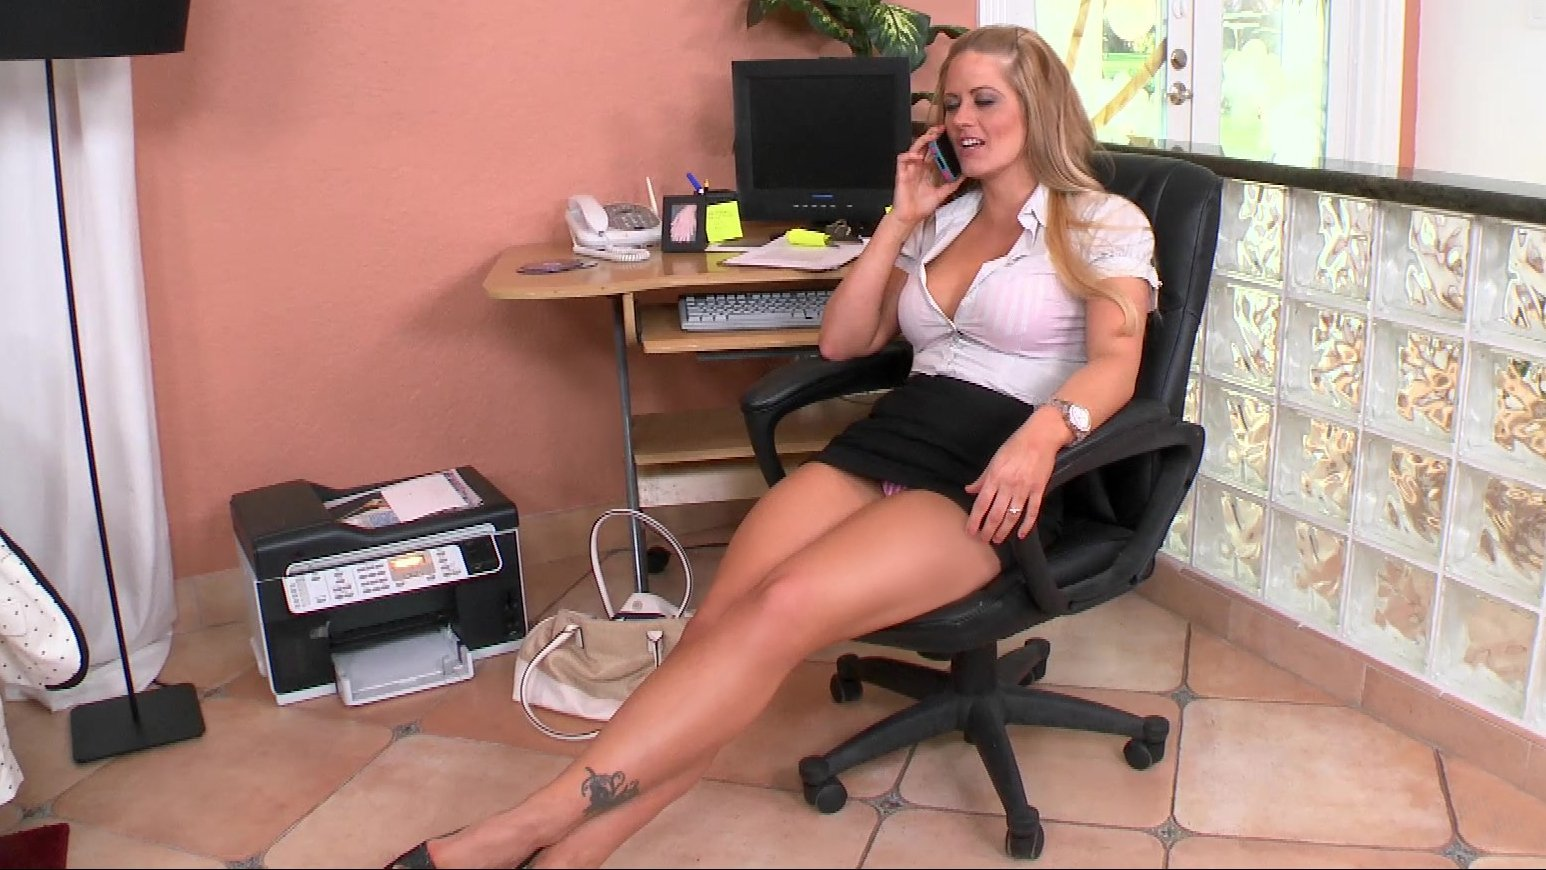 Fatty milf in high heels on legs Lisa Sparxxx exposing ass and tits  1007518